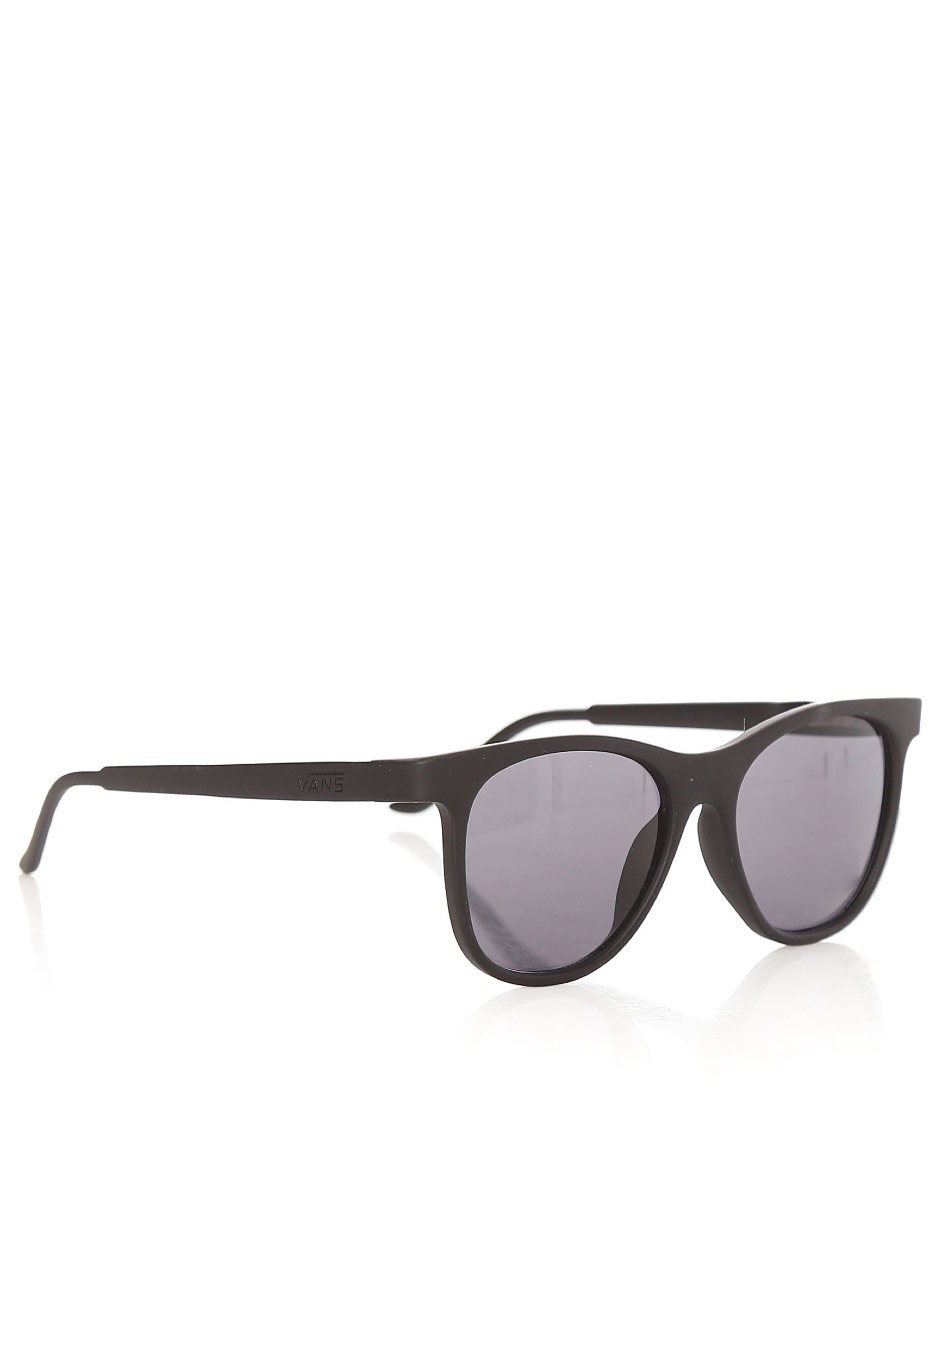 vans off the wall sunglasses black white